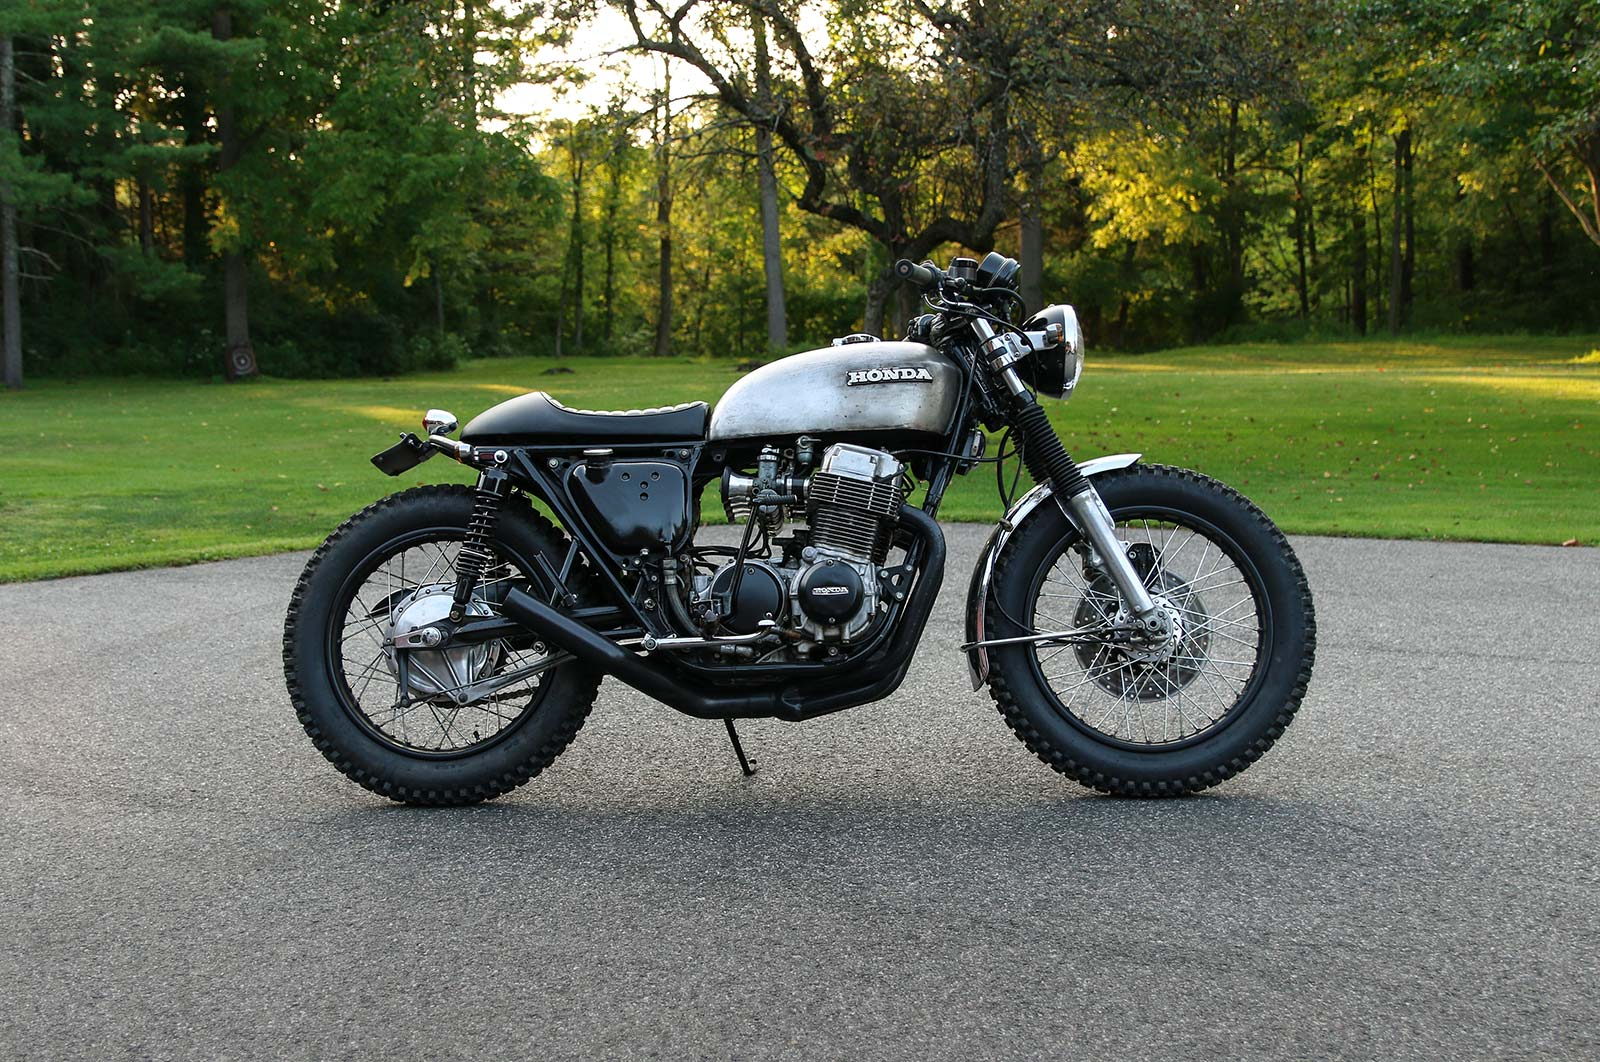 1973 Honda Cb750 Cafe Racer Moto Zuc Motorcycles And Thoughts